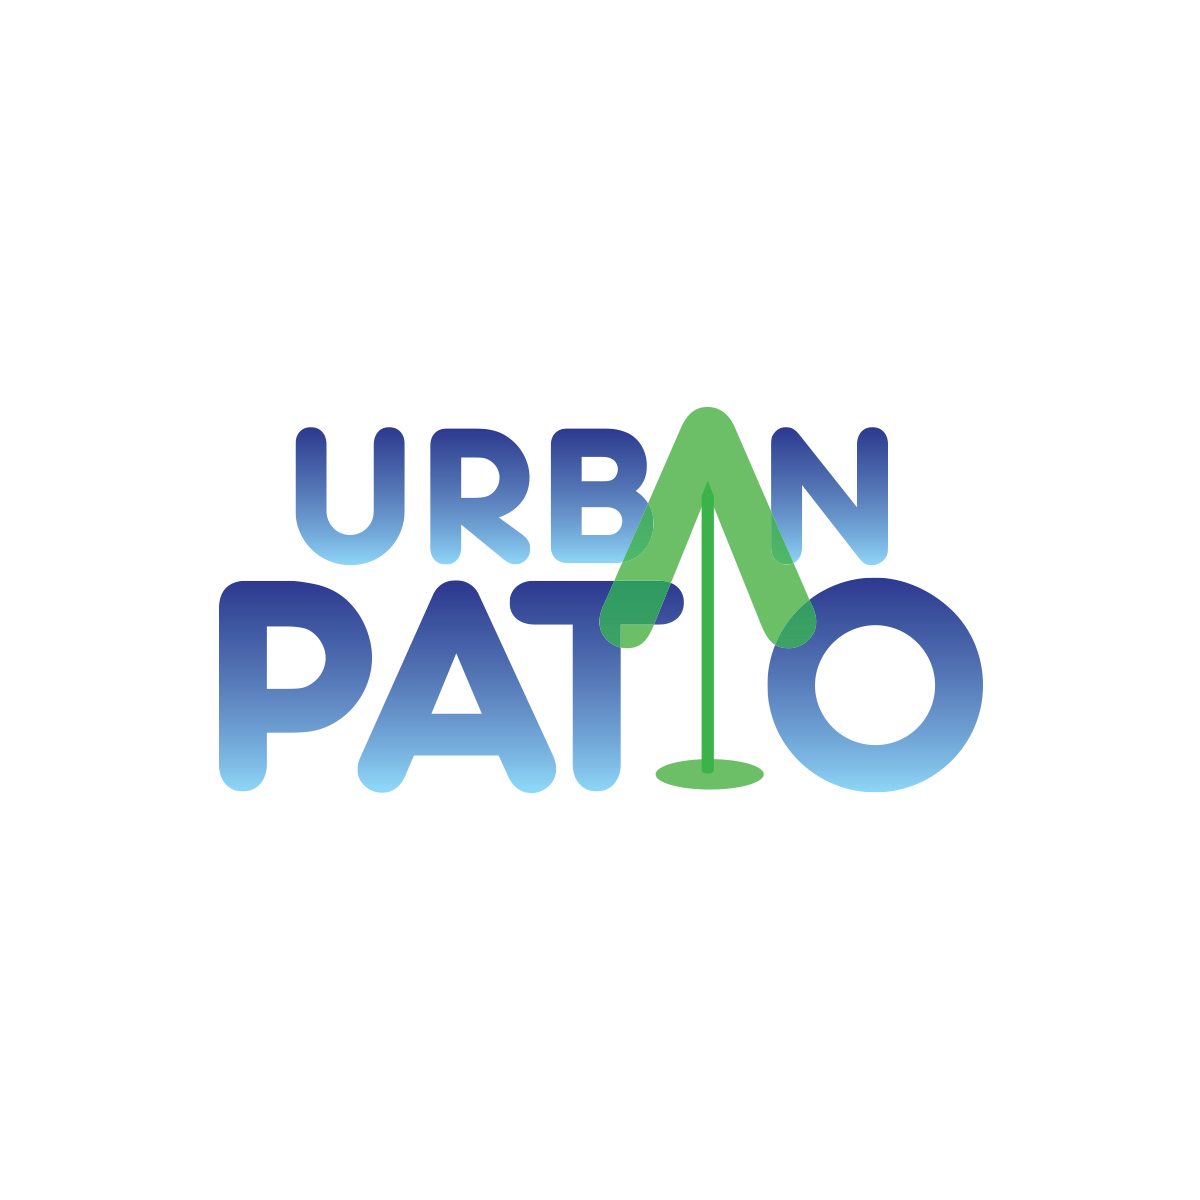 URBAN PATIO